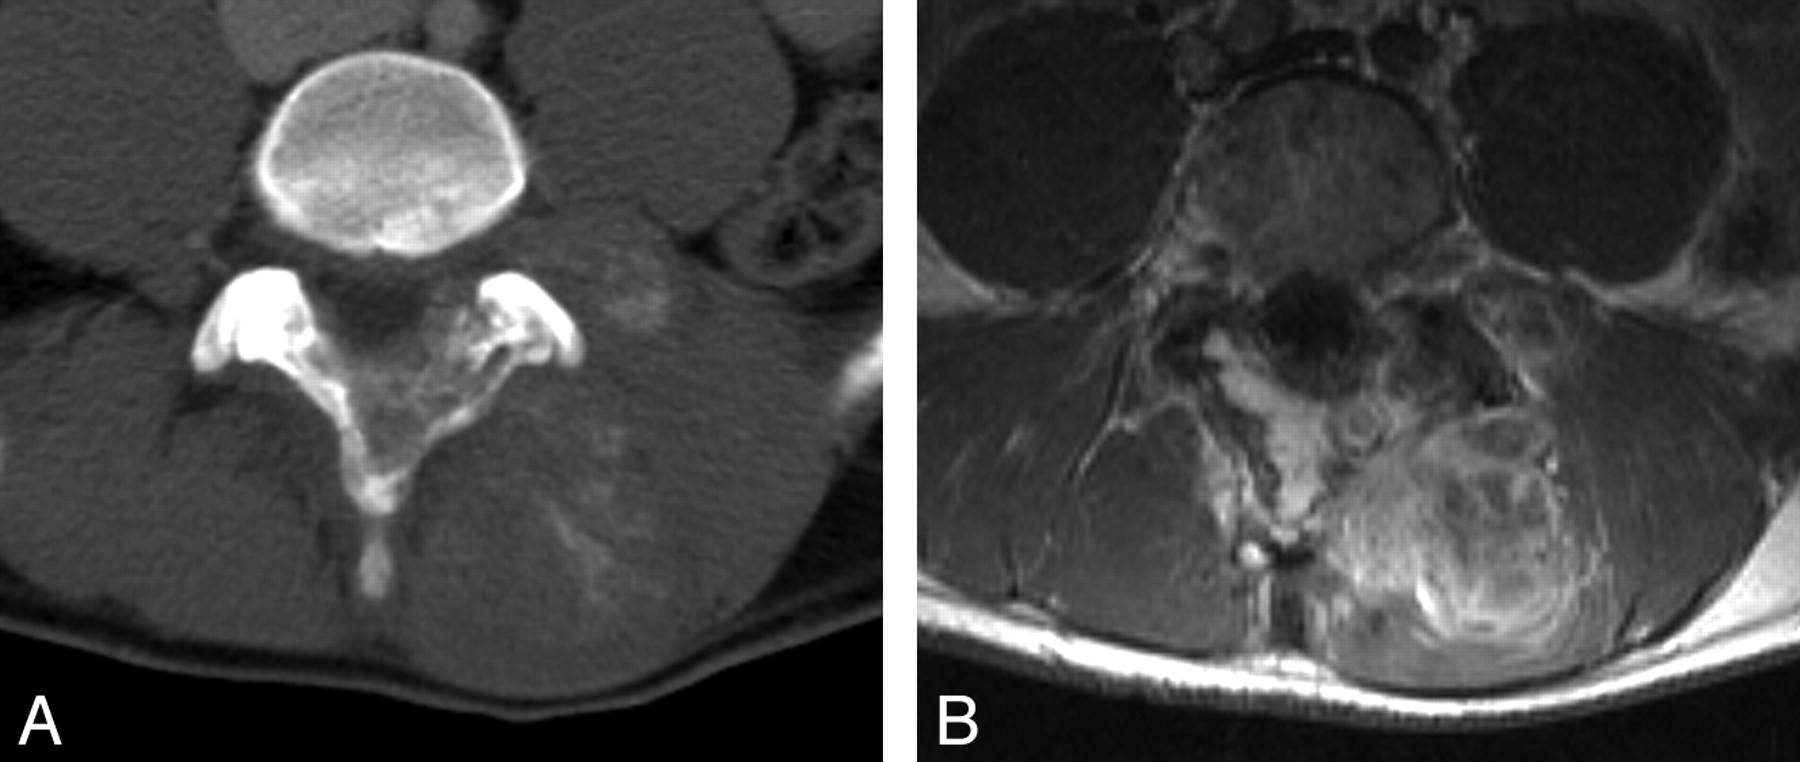 Imaging of Back Pain in Children | American Journal of Neuroradiology